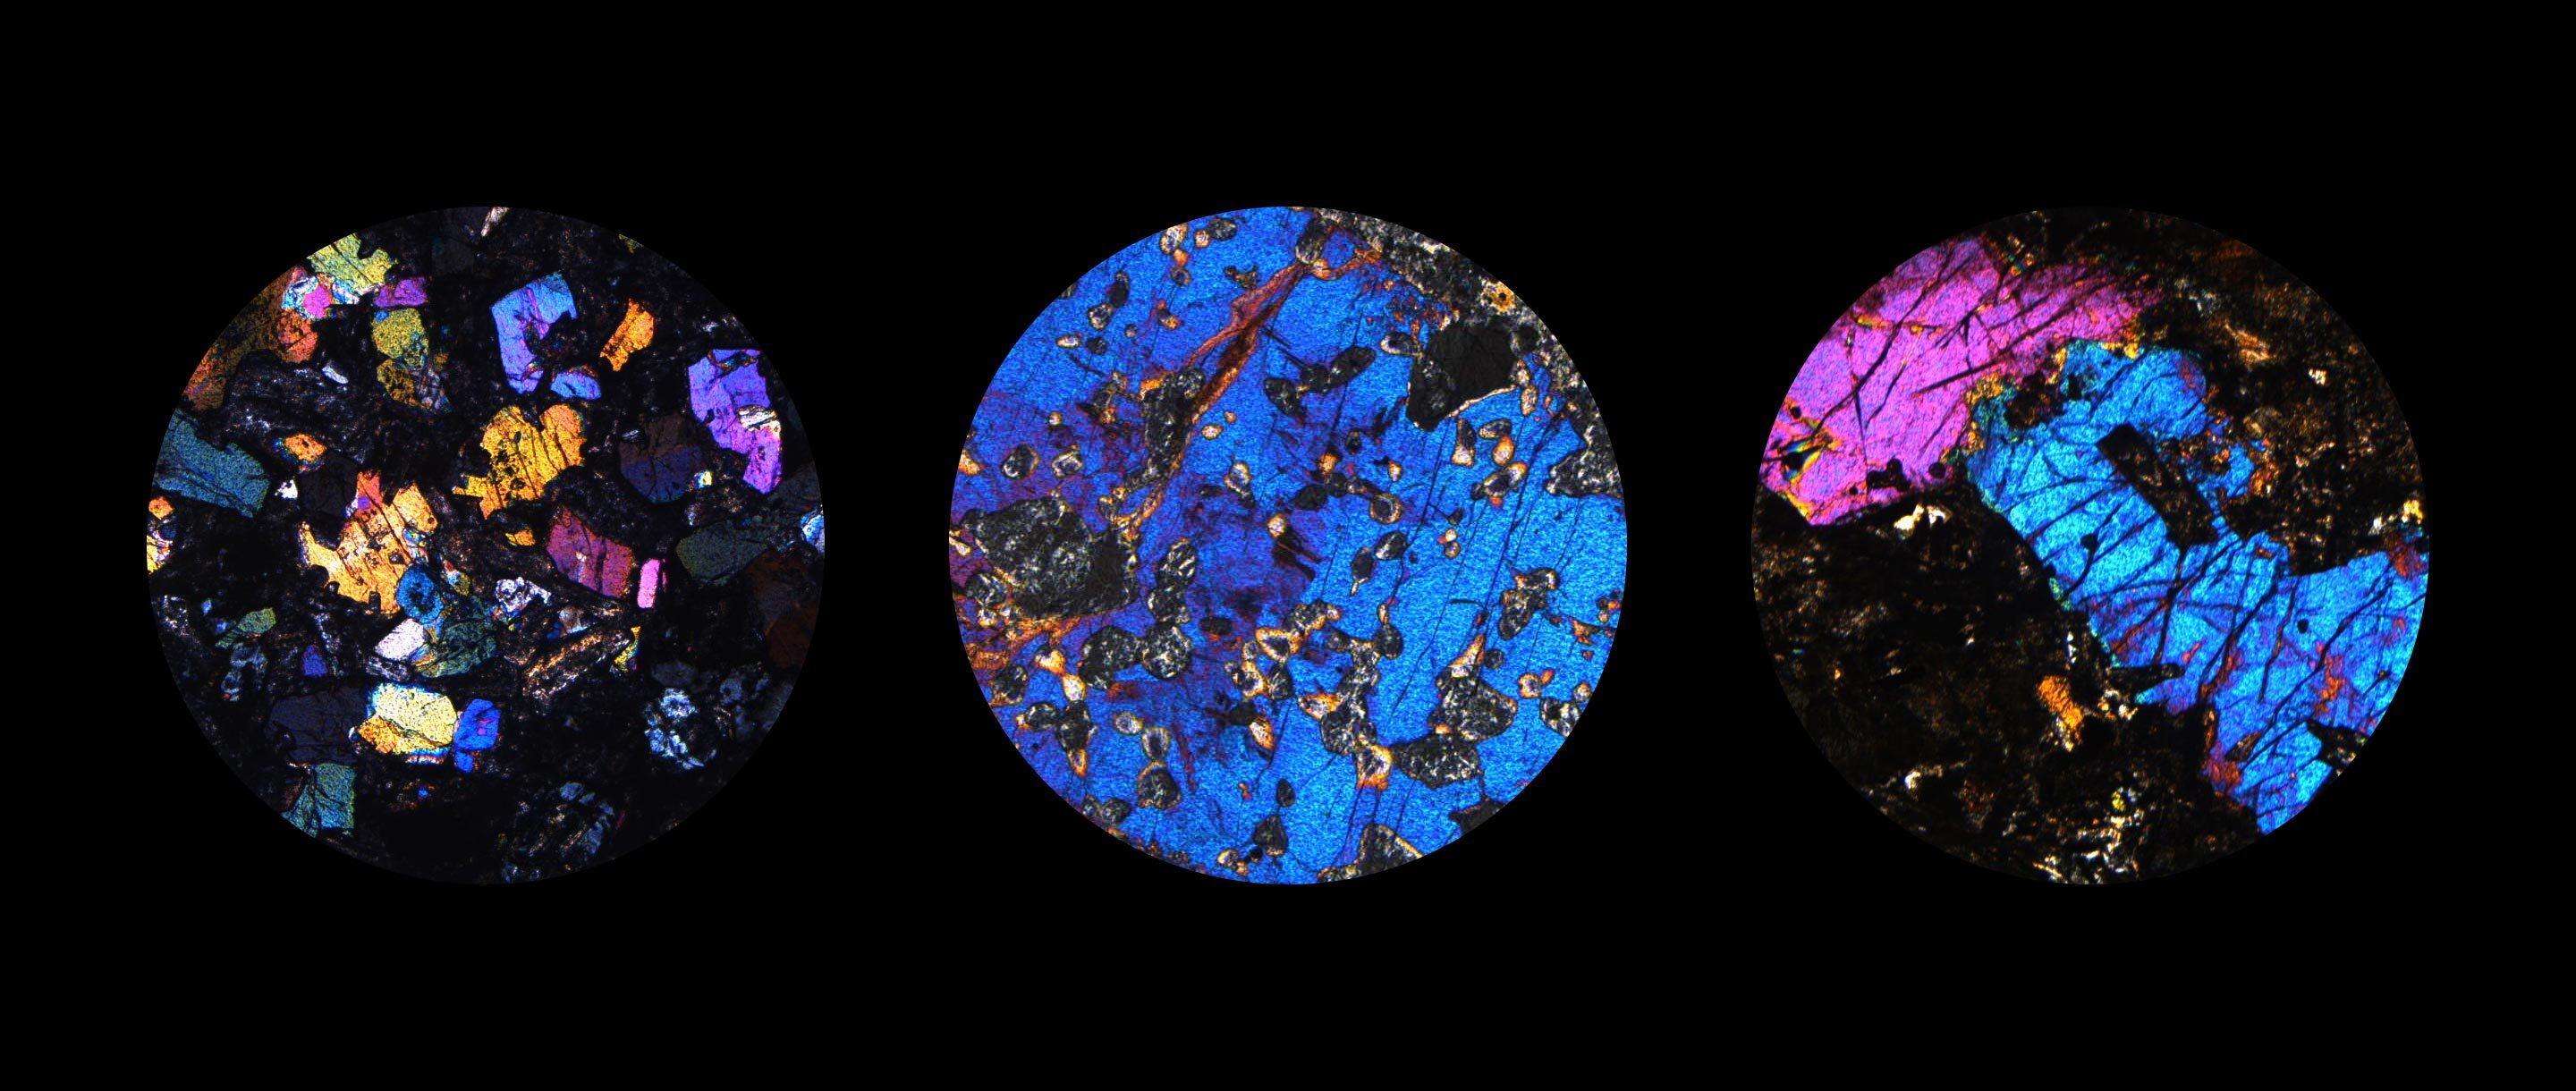 A mosaic of five microscope images of igneous rocks. The rocks are dappled with blue, pink, orange and multicolor inclusions.